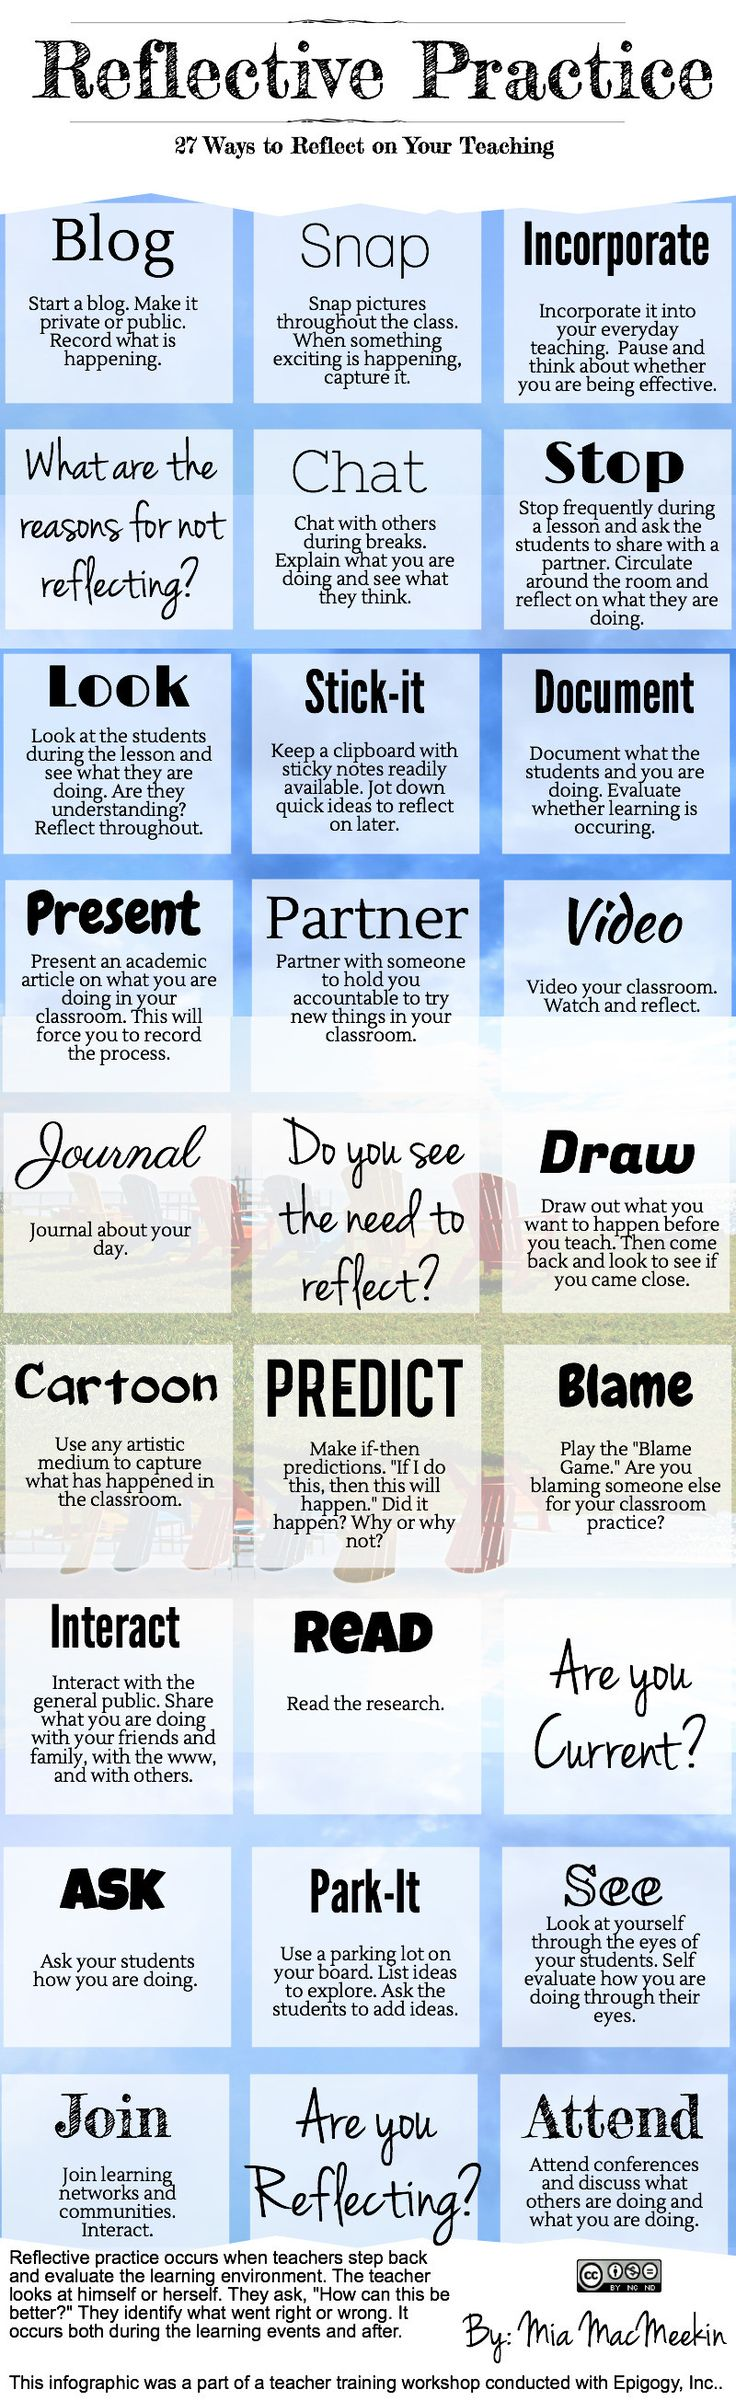 Reflective Practice- Are you Doing it?  Reflective practice occurs when teachers step back and evaluate the learning environment. The teac...